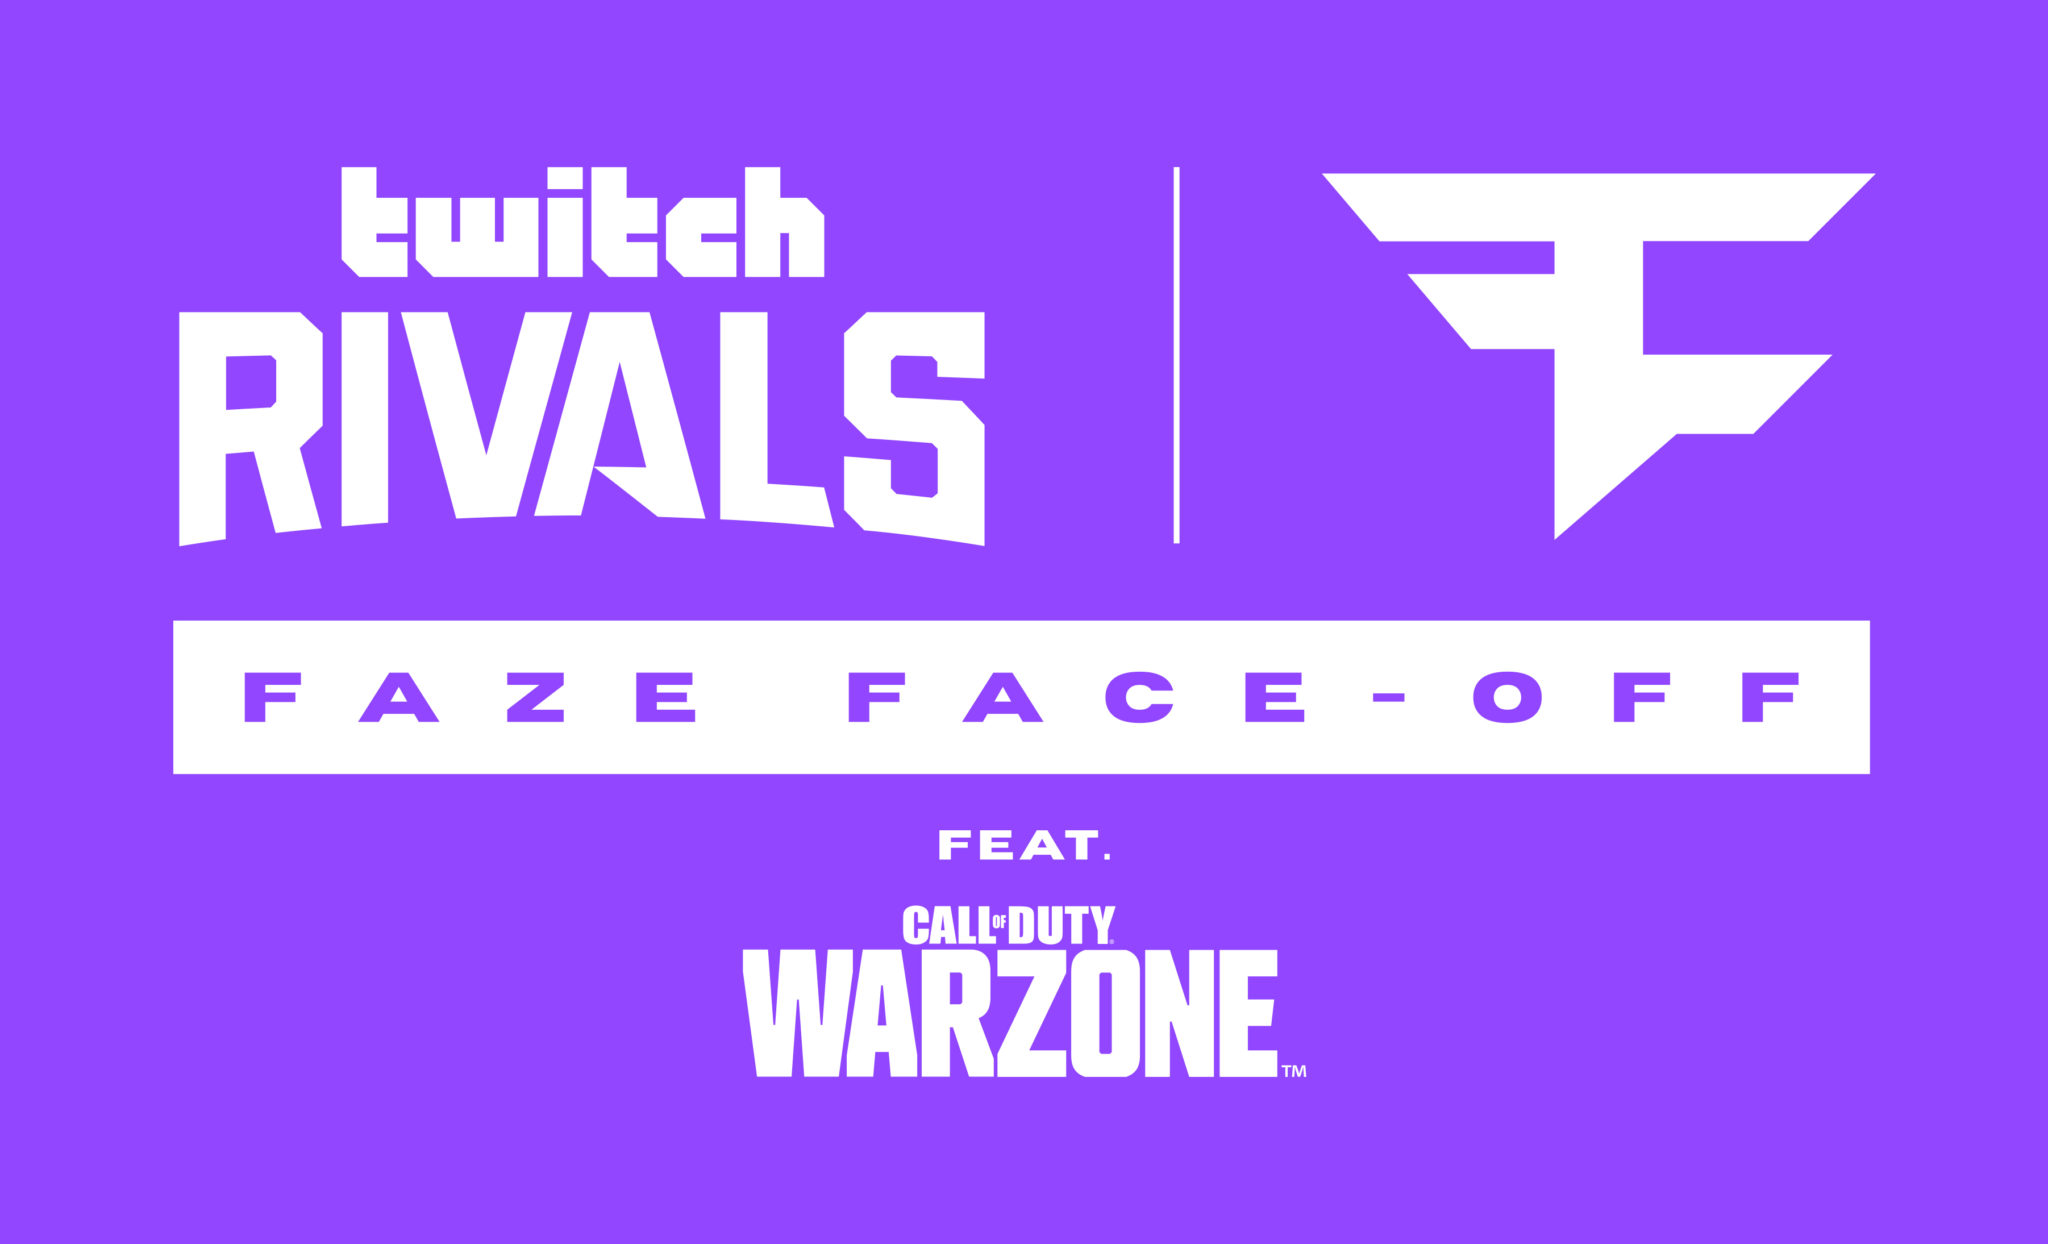 Warzone Twitch Rivals FaZe event.